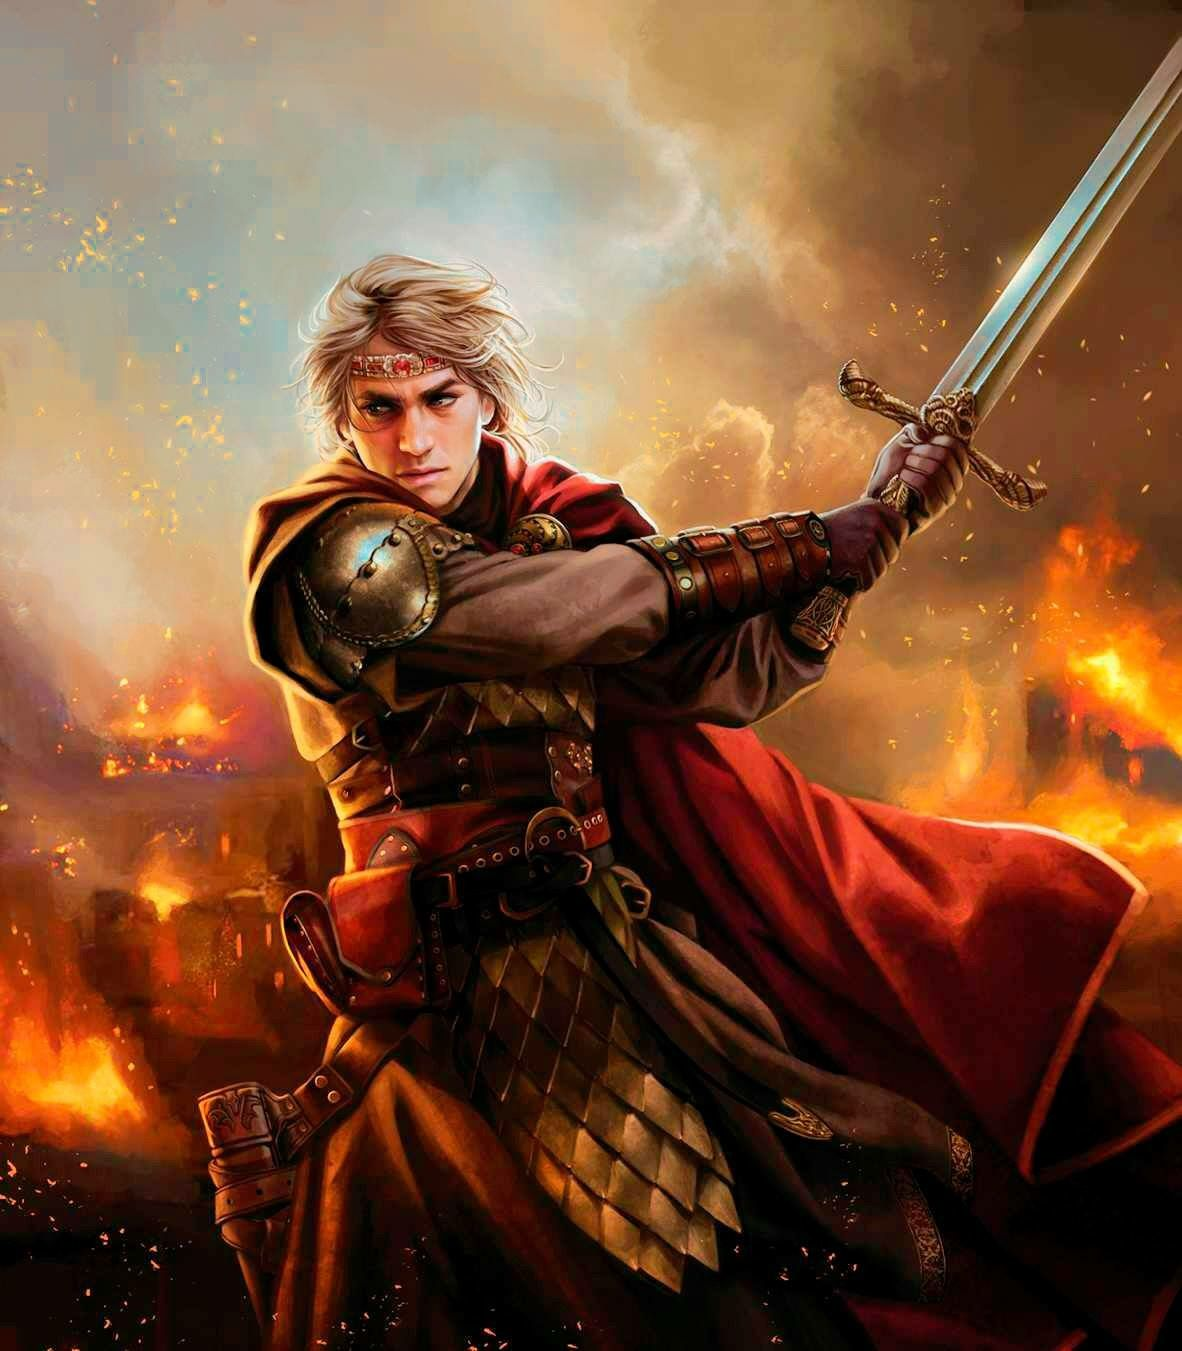 Warriors Fire And Ice Book: The God Aengus Mac Og In Battle With His Sword Morltach